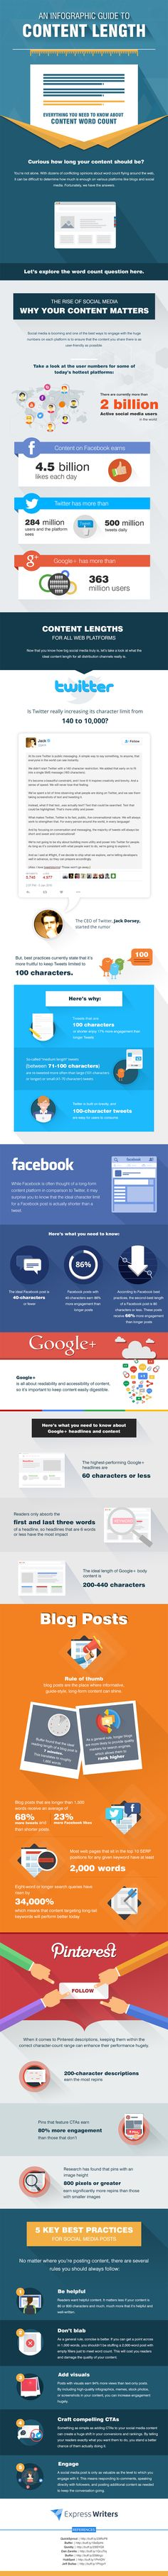 Everything You Need to Know About Online Content Word Count (Infographic)